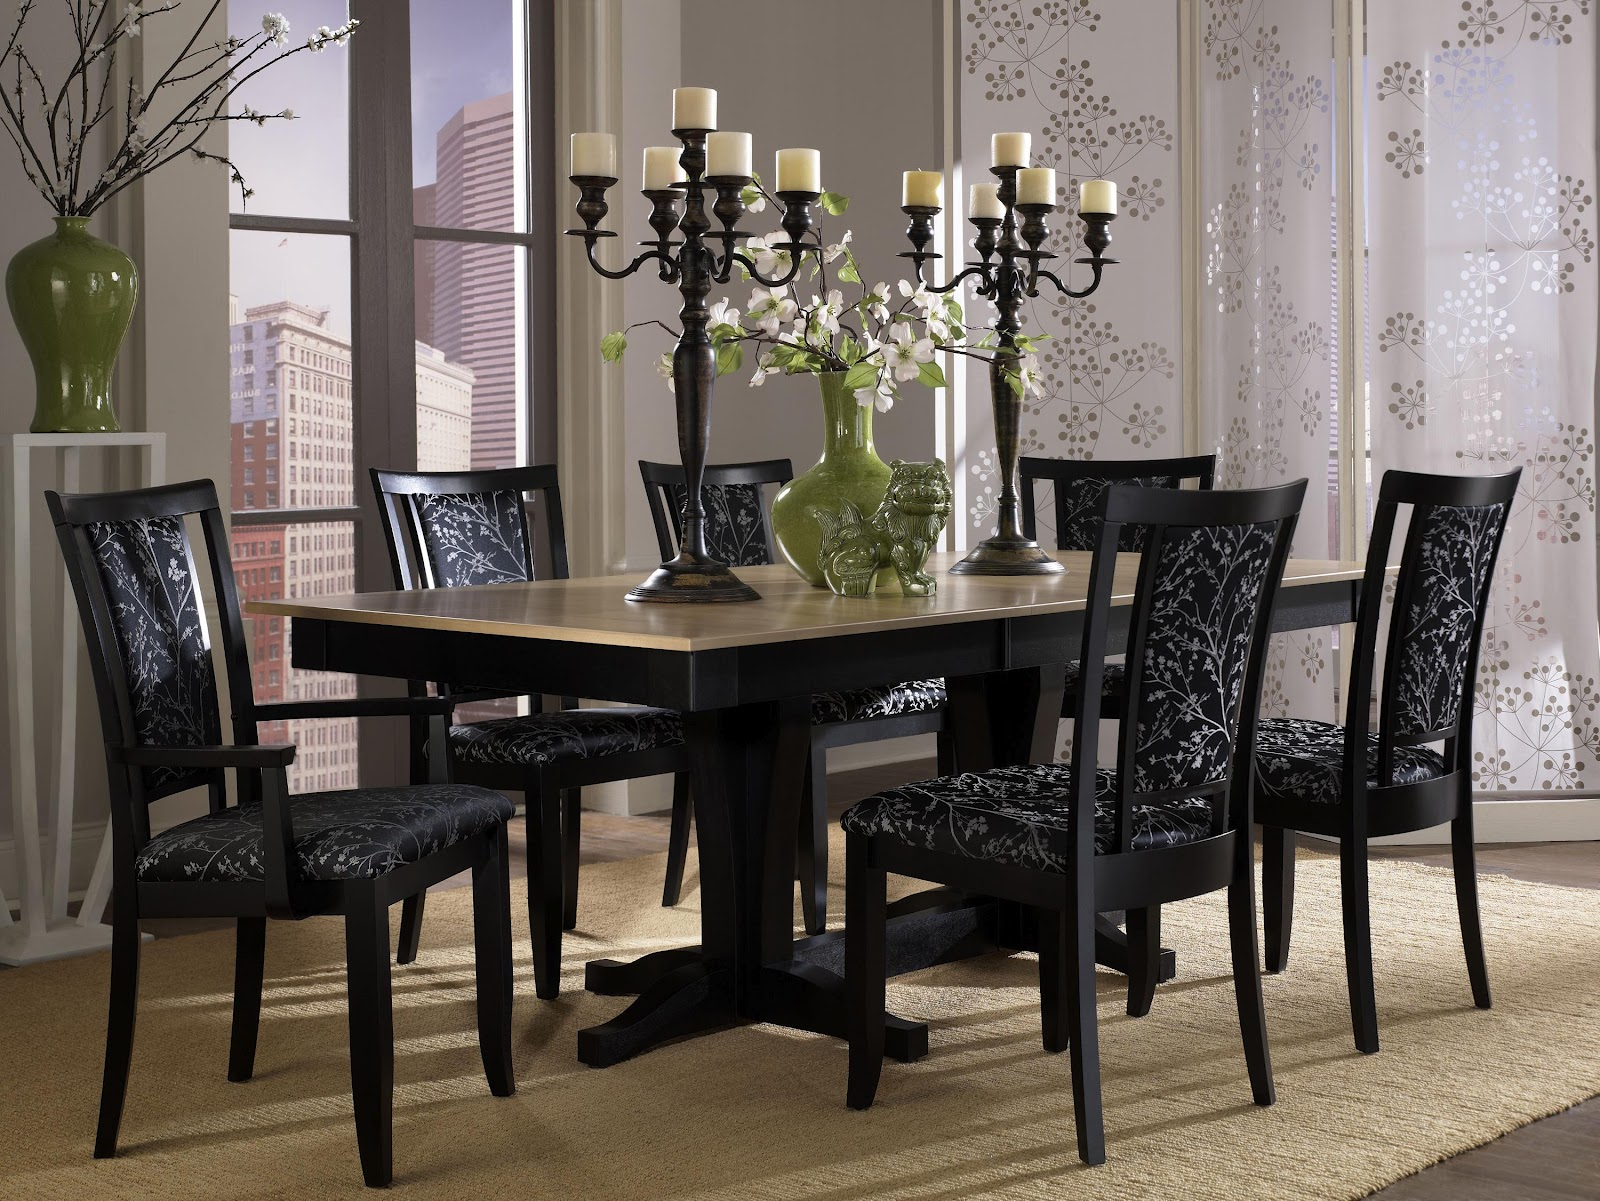 Canadel dining room sets new york dining room unique for Contemporary dining room furniture ideas